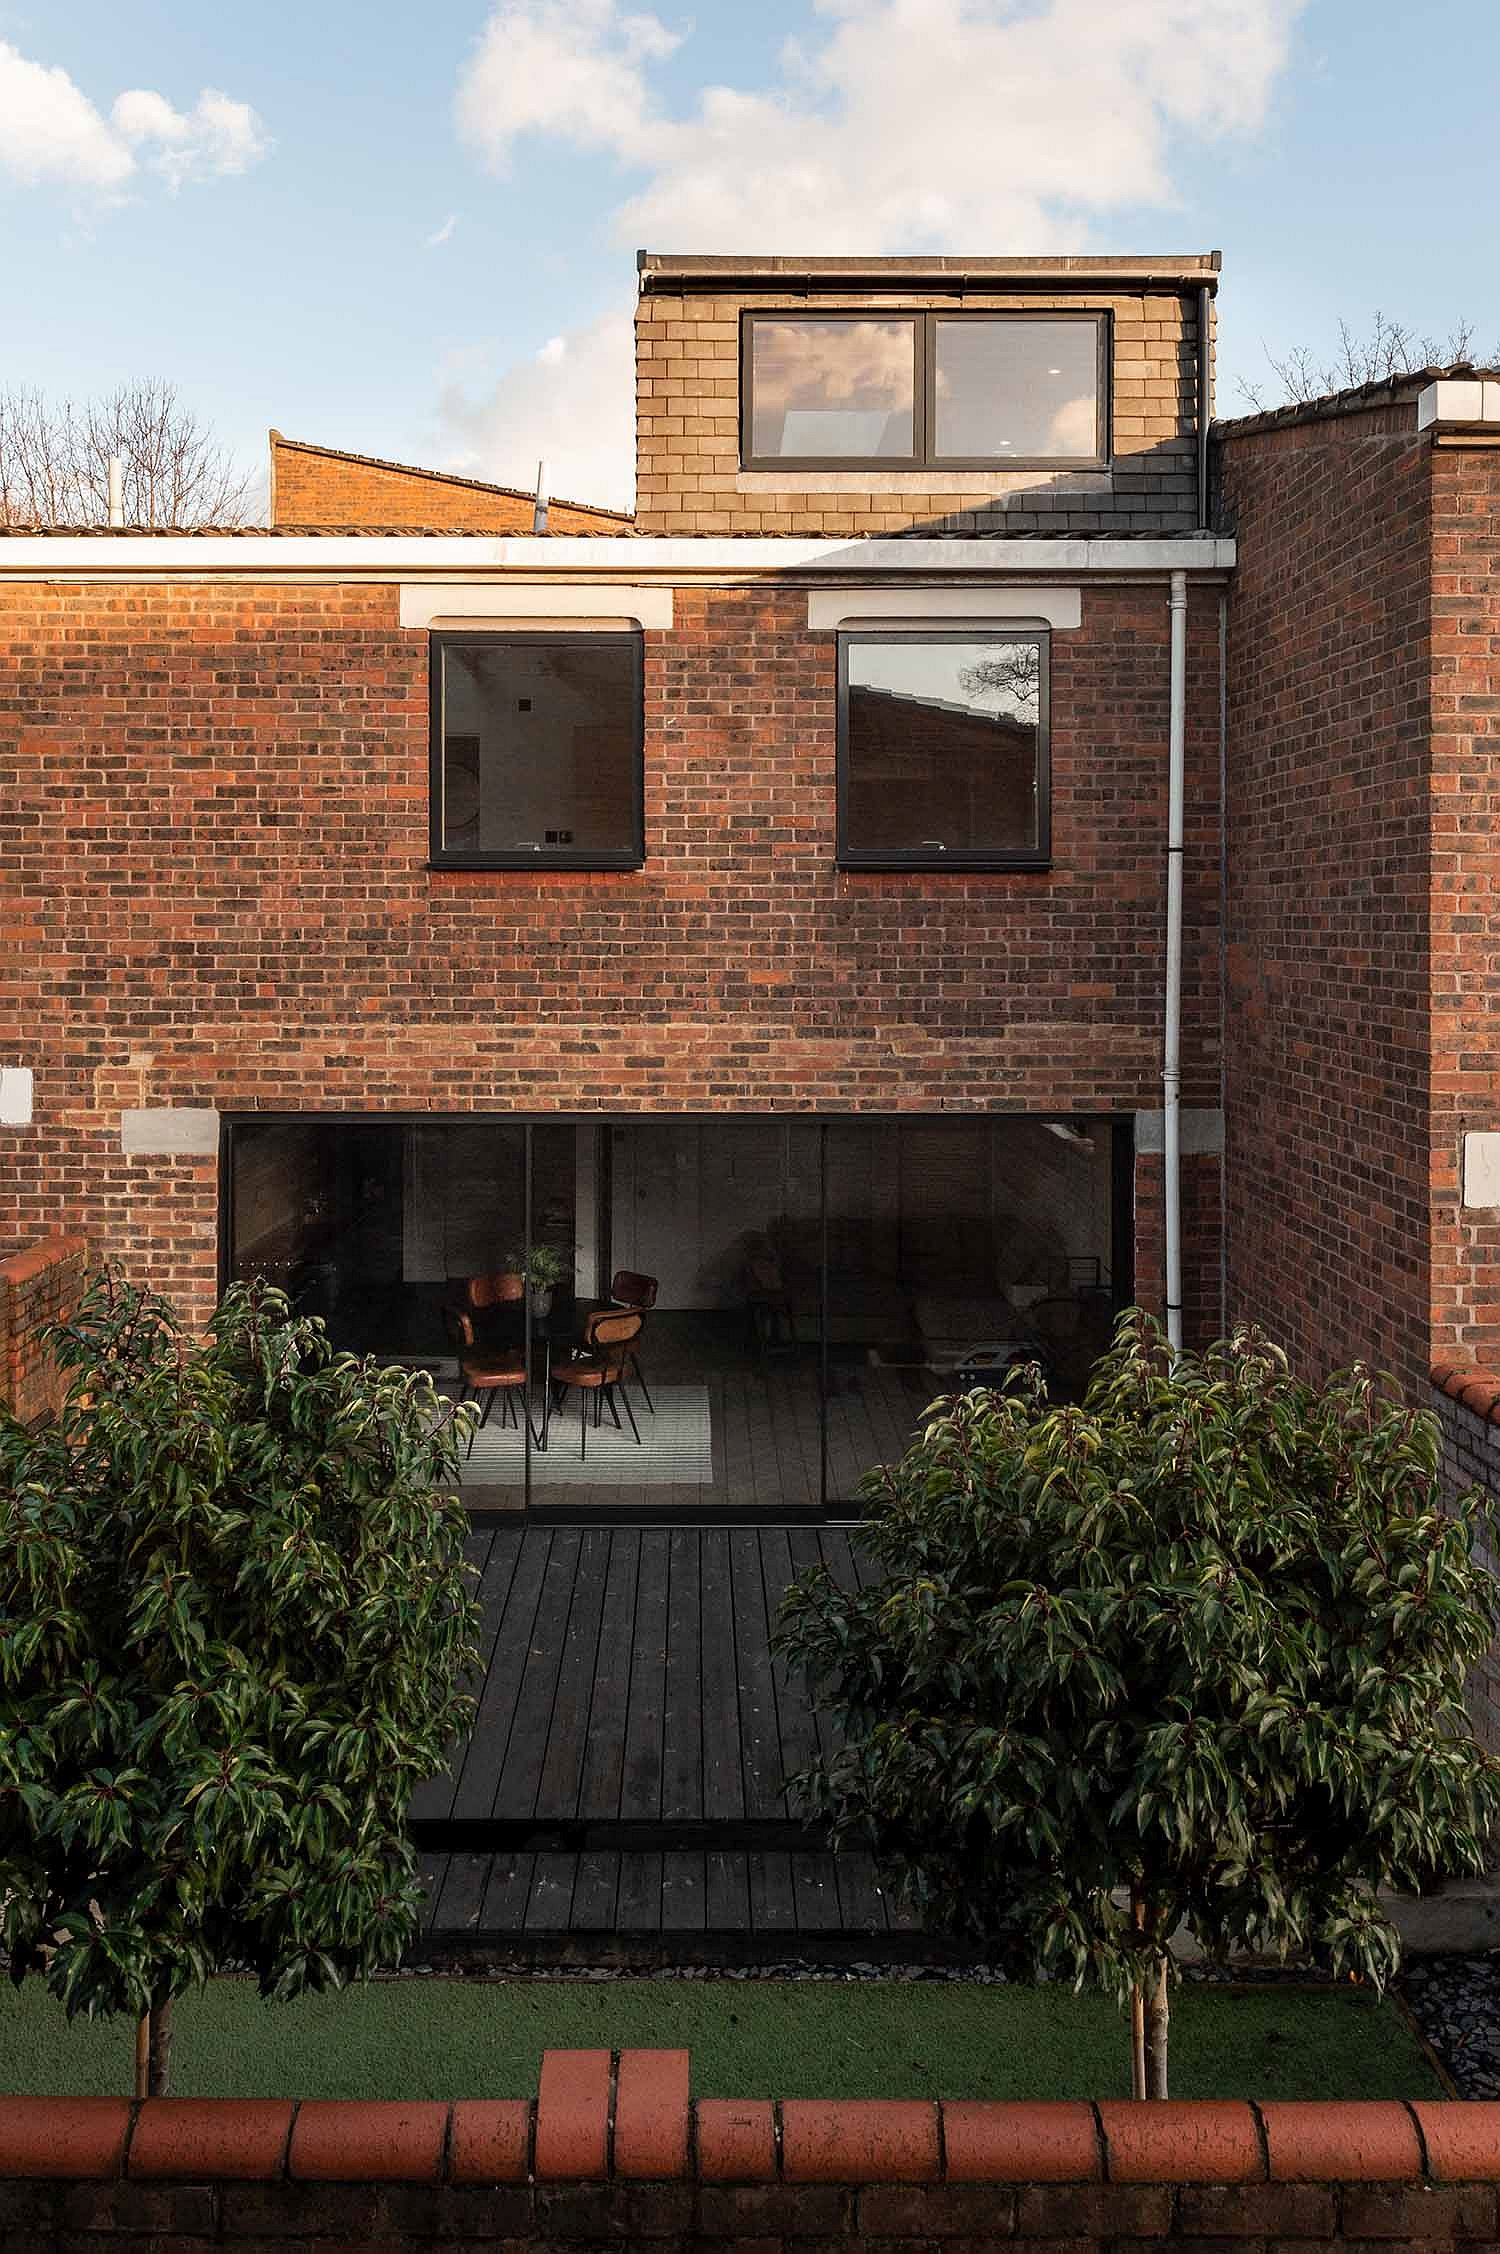 Facade of the London home in brick with glass walls and windows that offer textural contrast